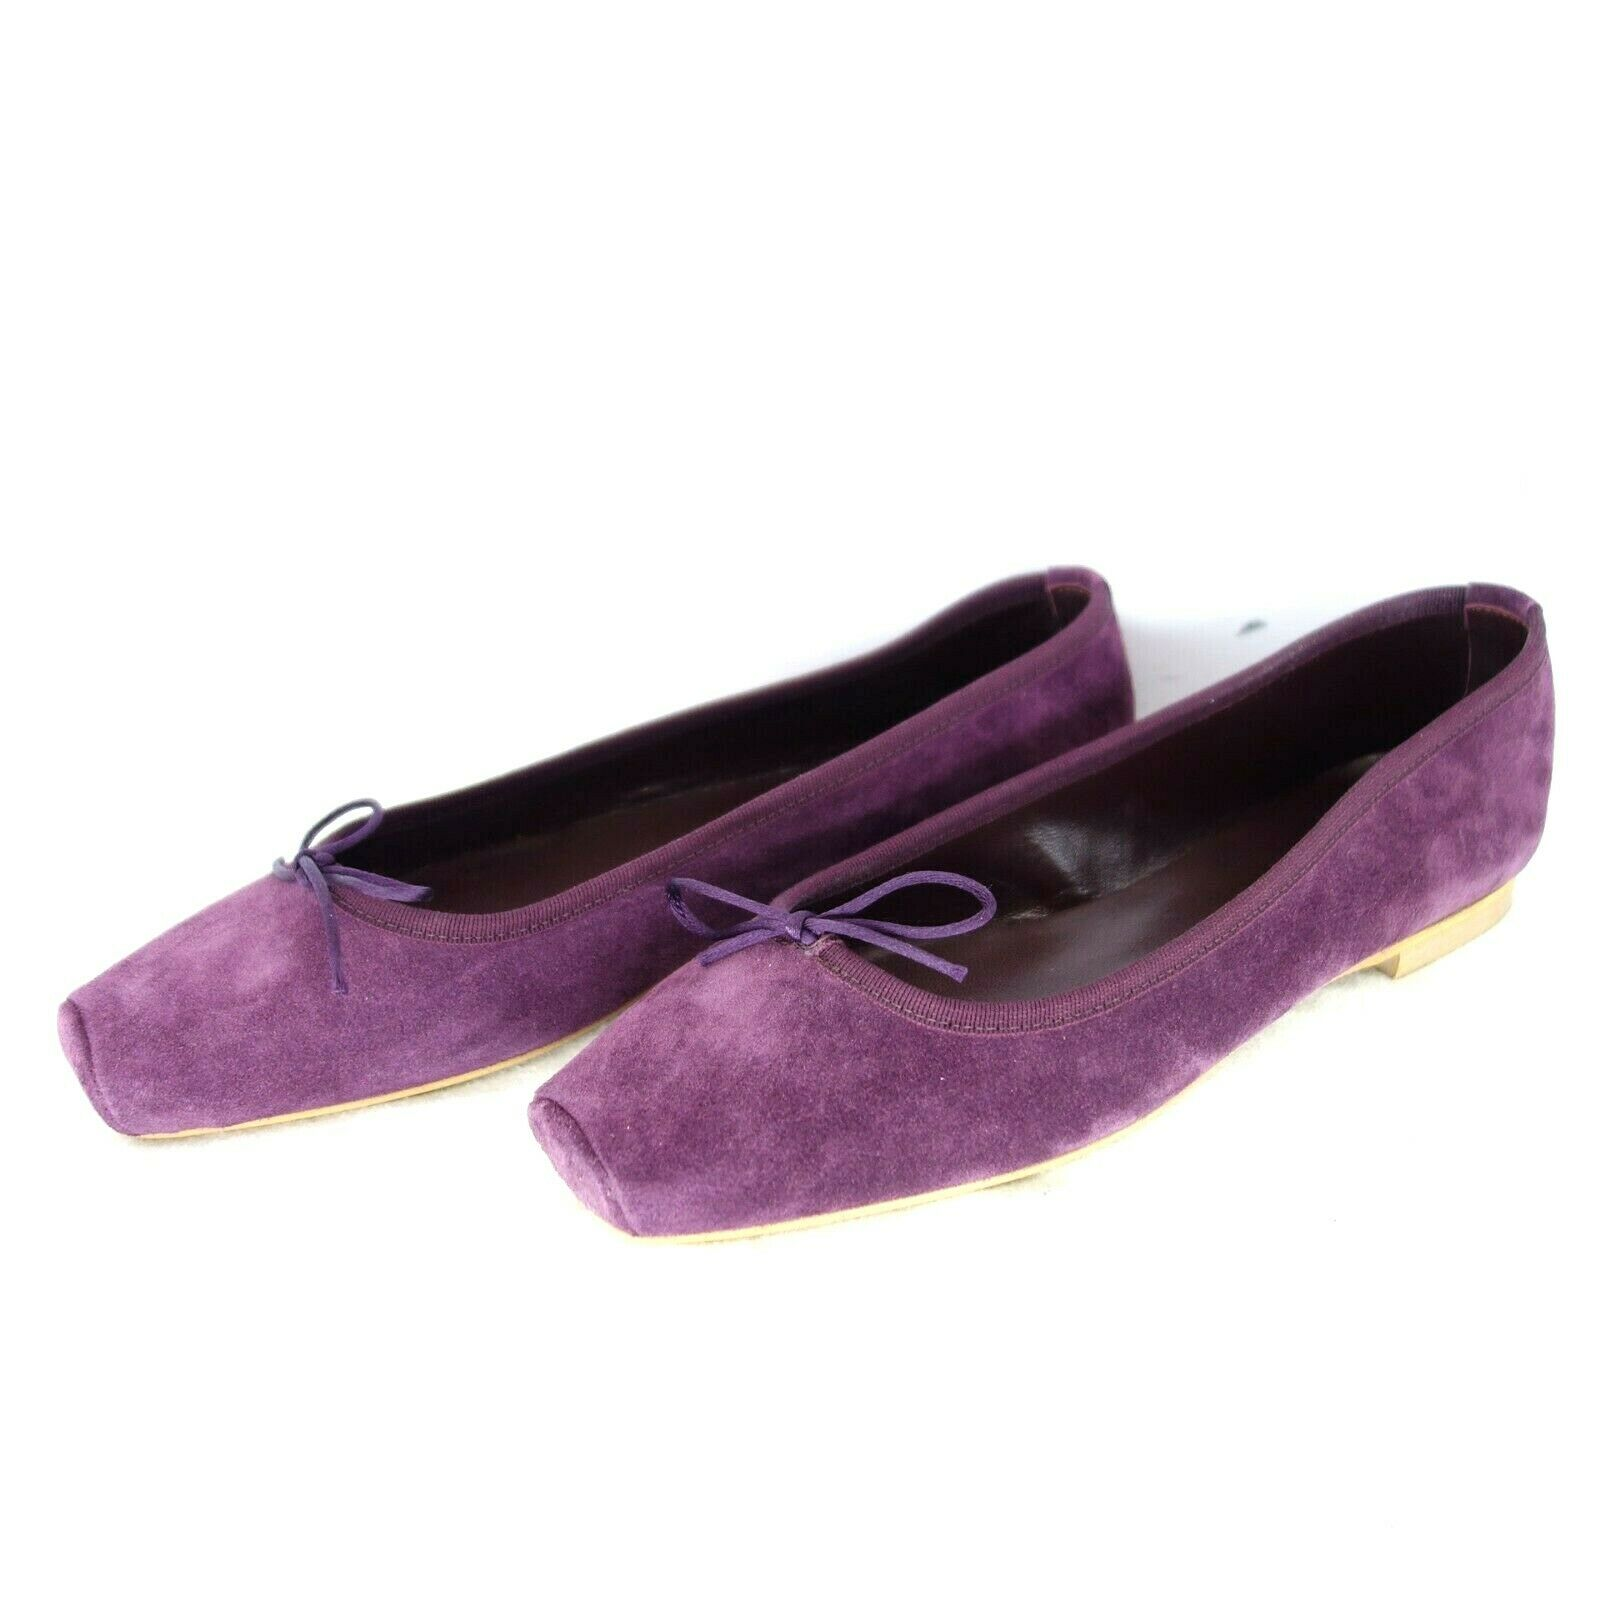 Paolo simonini boots women ballerinas 36 42 suede leather tie np 169 new